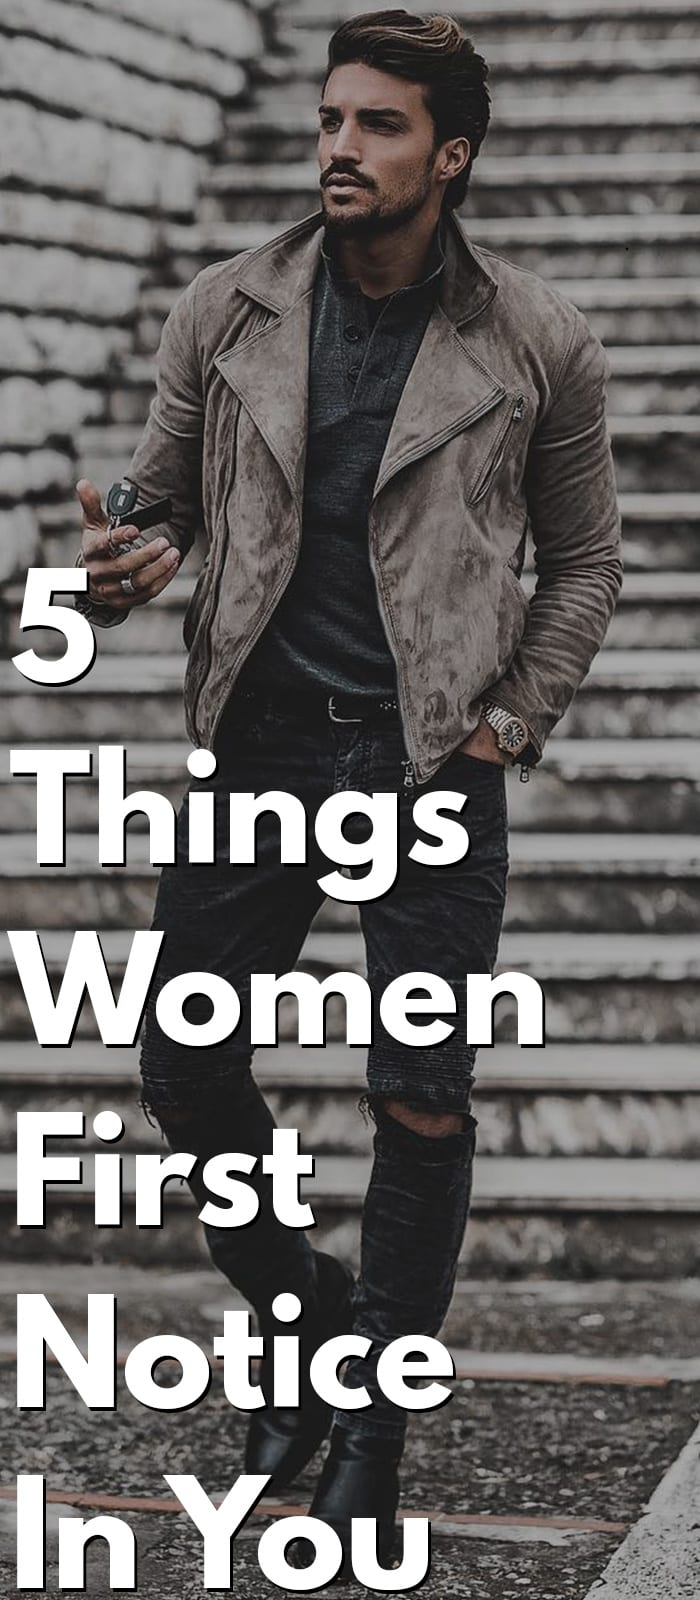 5 Things Women First Notice